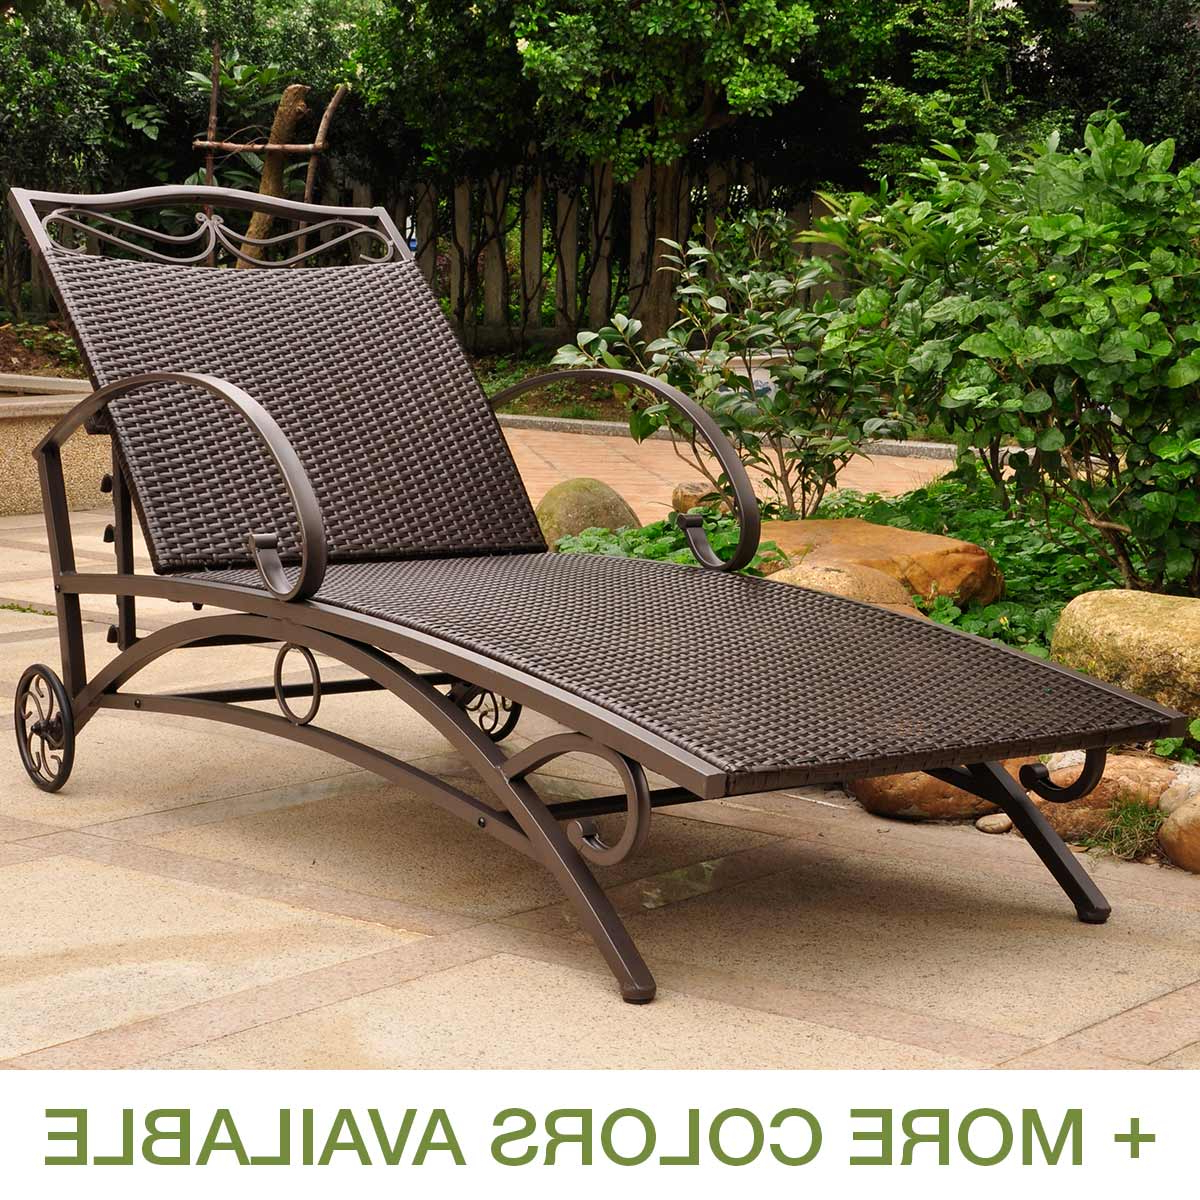 Popular International Caravan Valencia Resin Wicker Multi Position Pertaining To Multi Position Chaise Lounges (View 21 of 25)